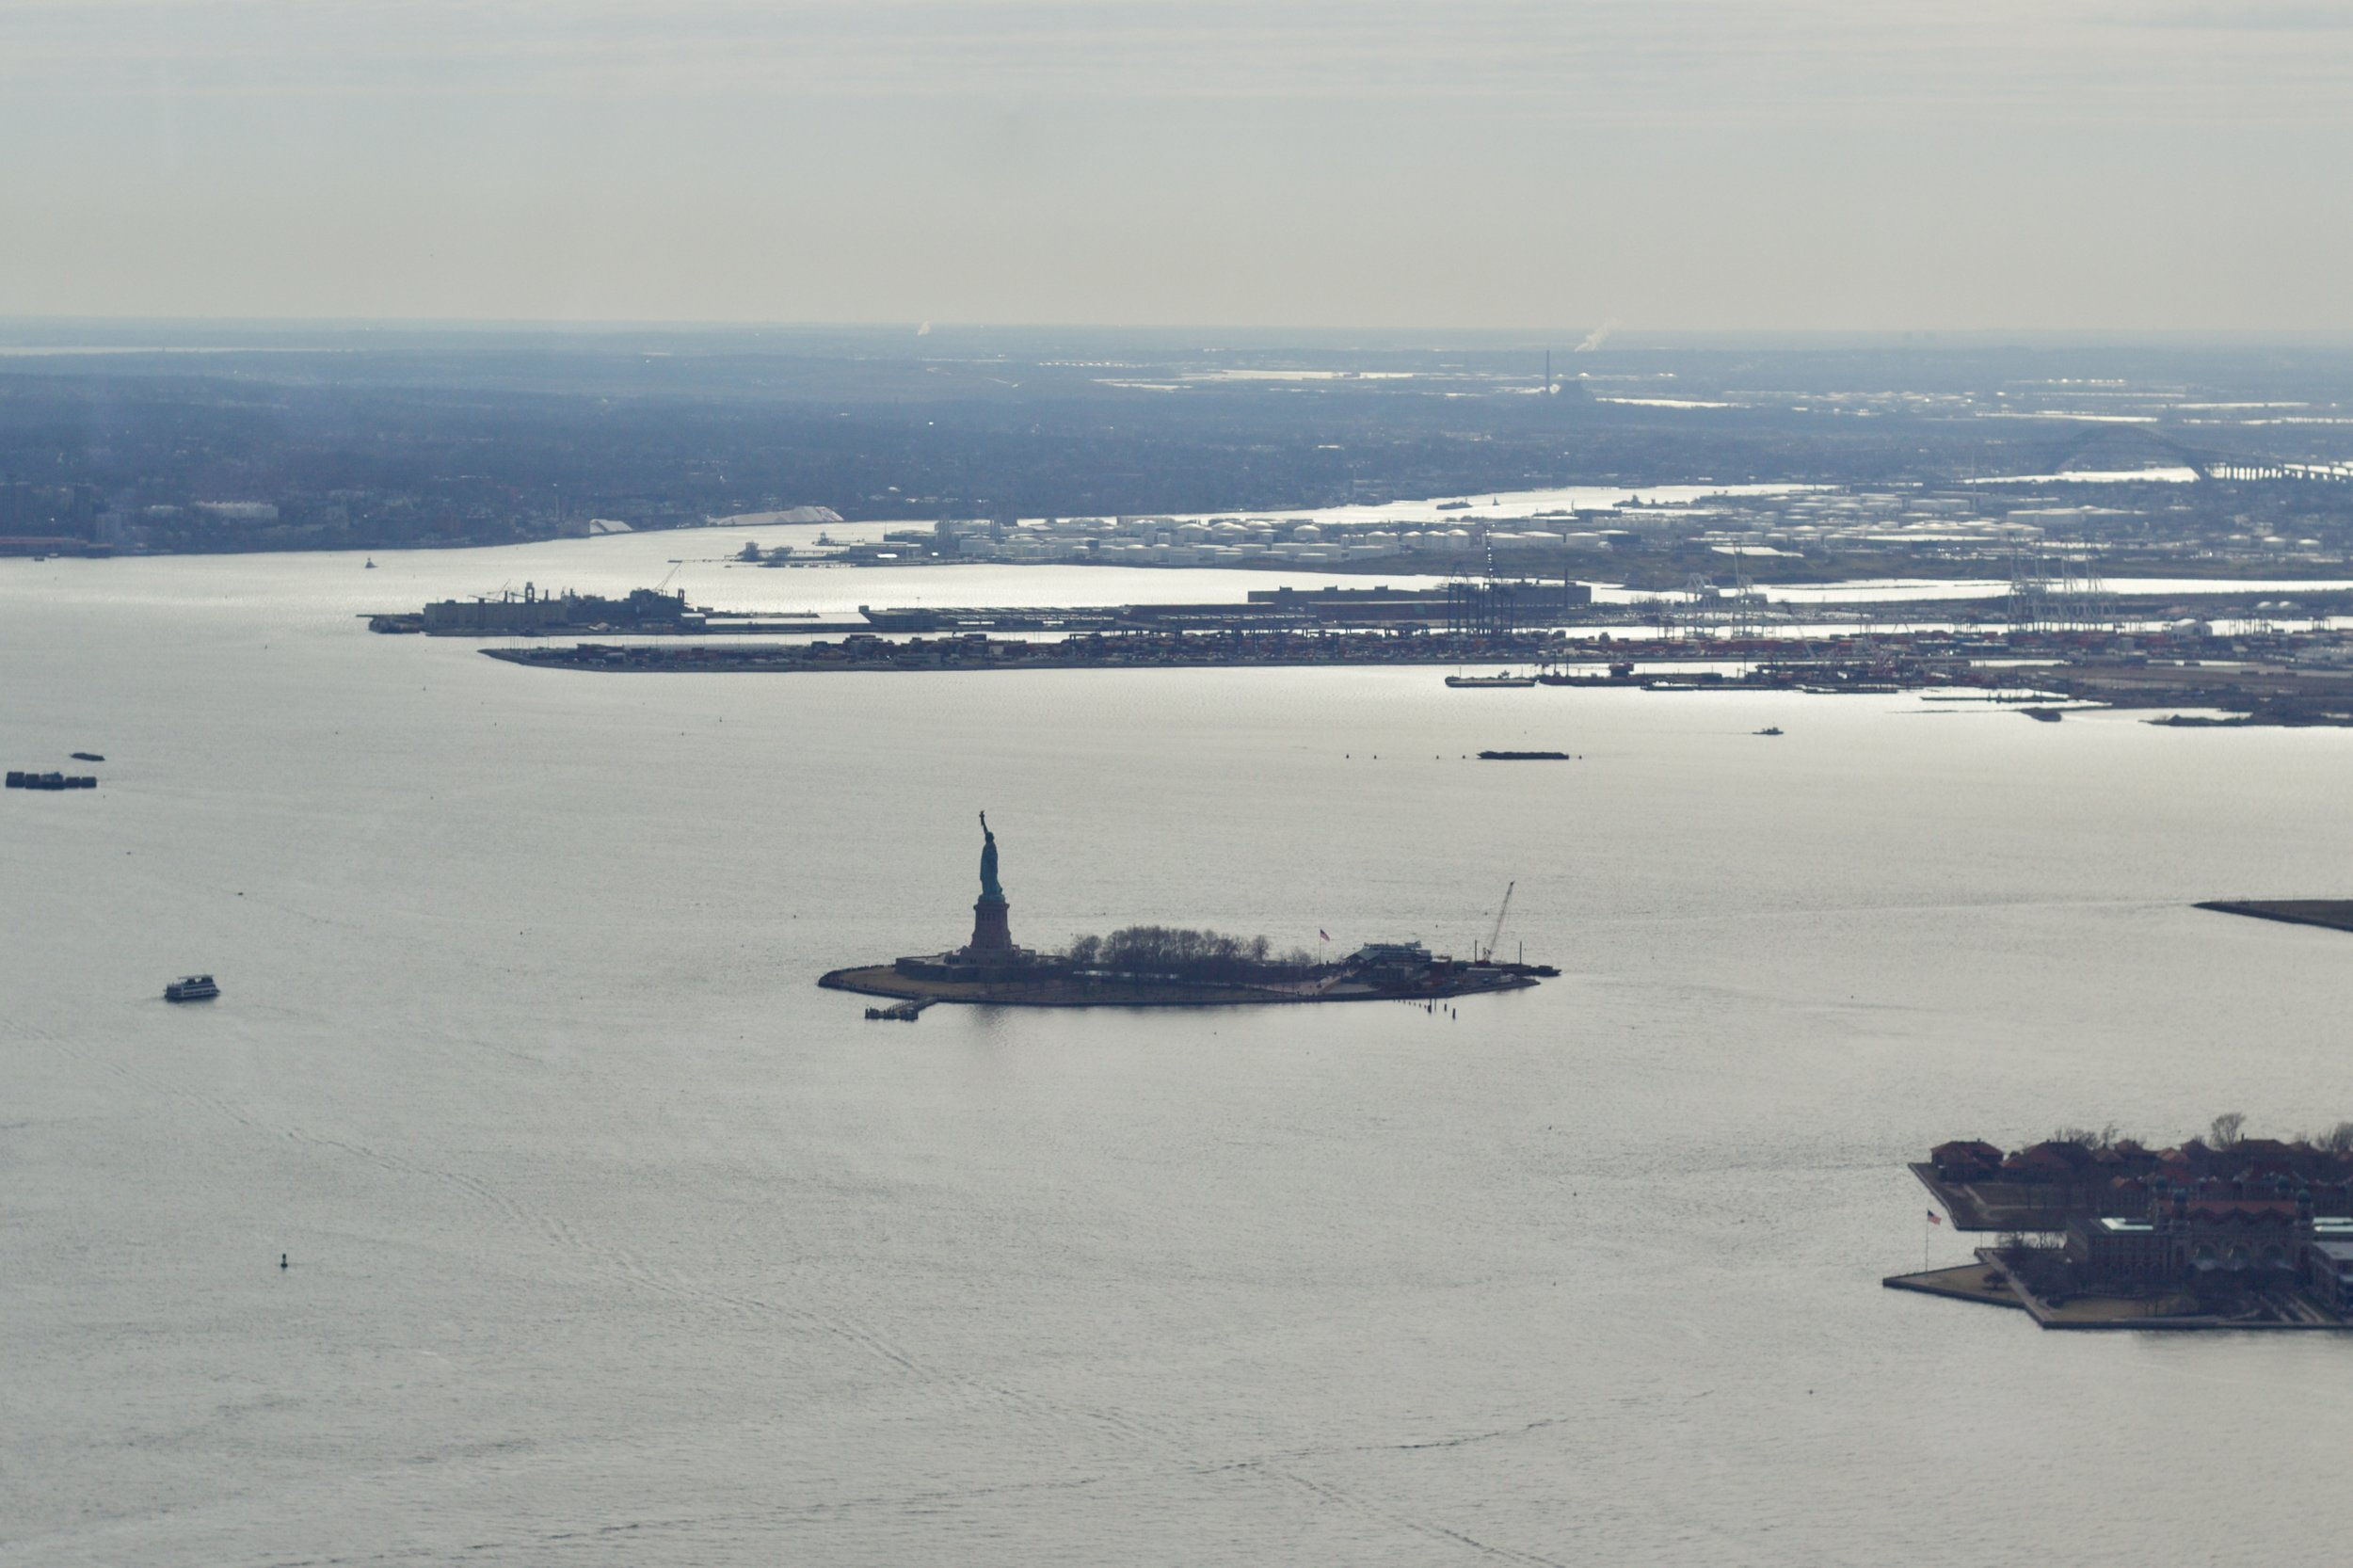 Samantha McNeil Blog // View of the Statue of Liberty from the One World Observatory